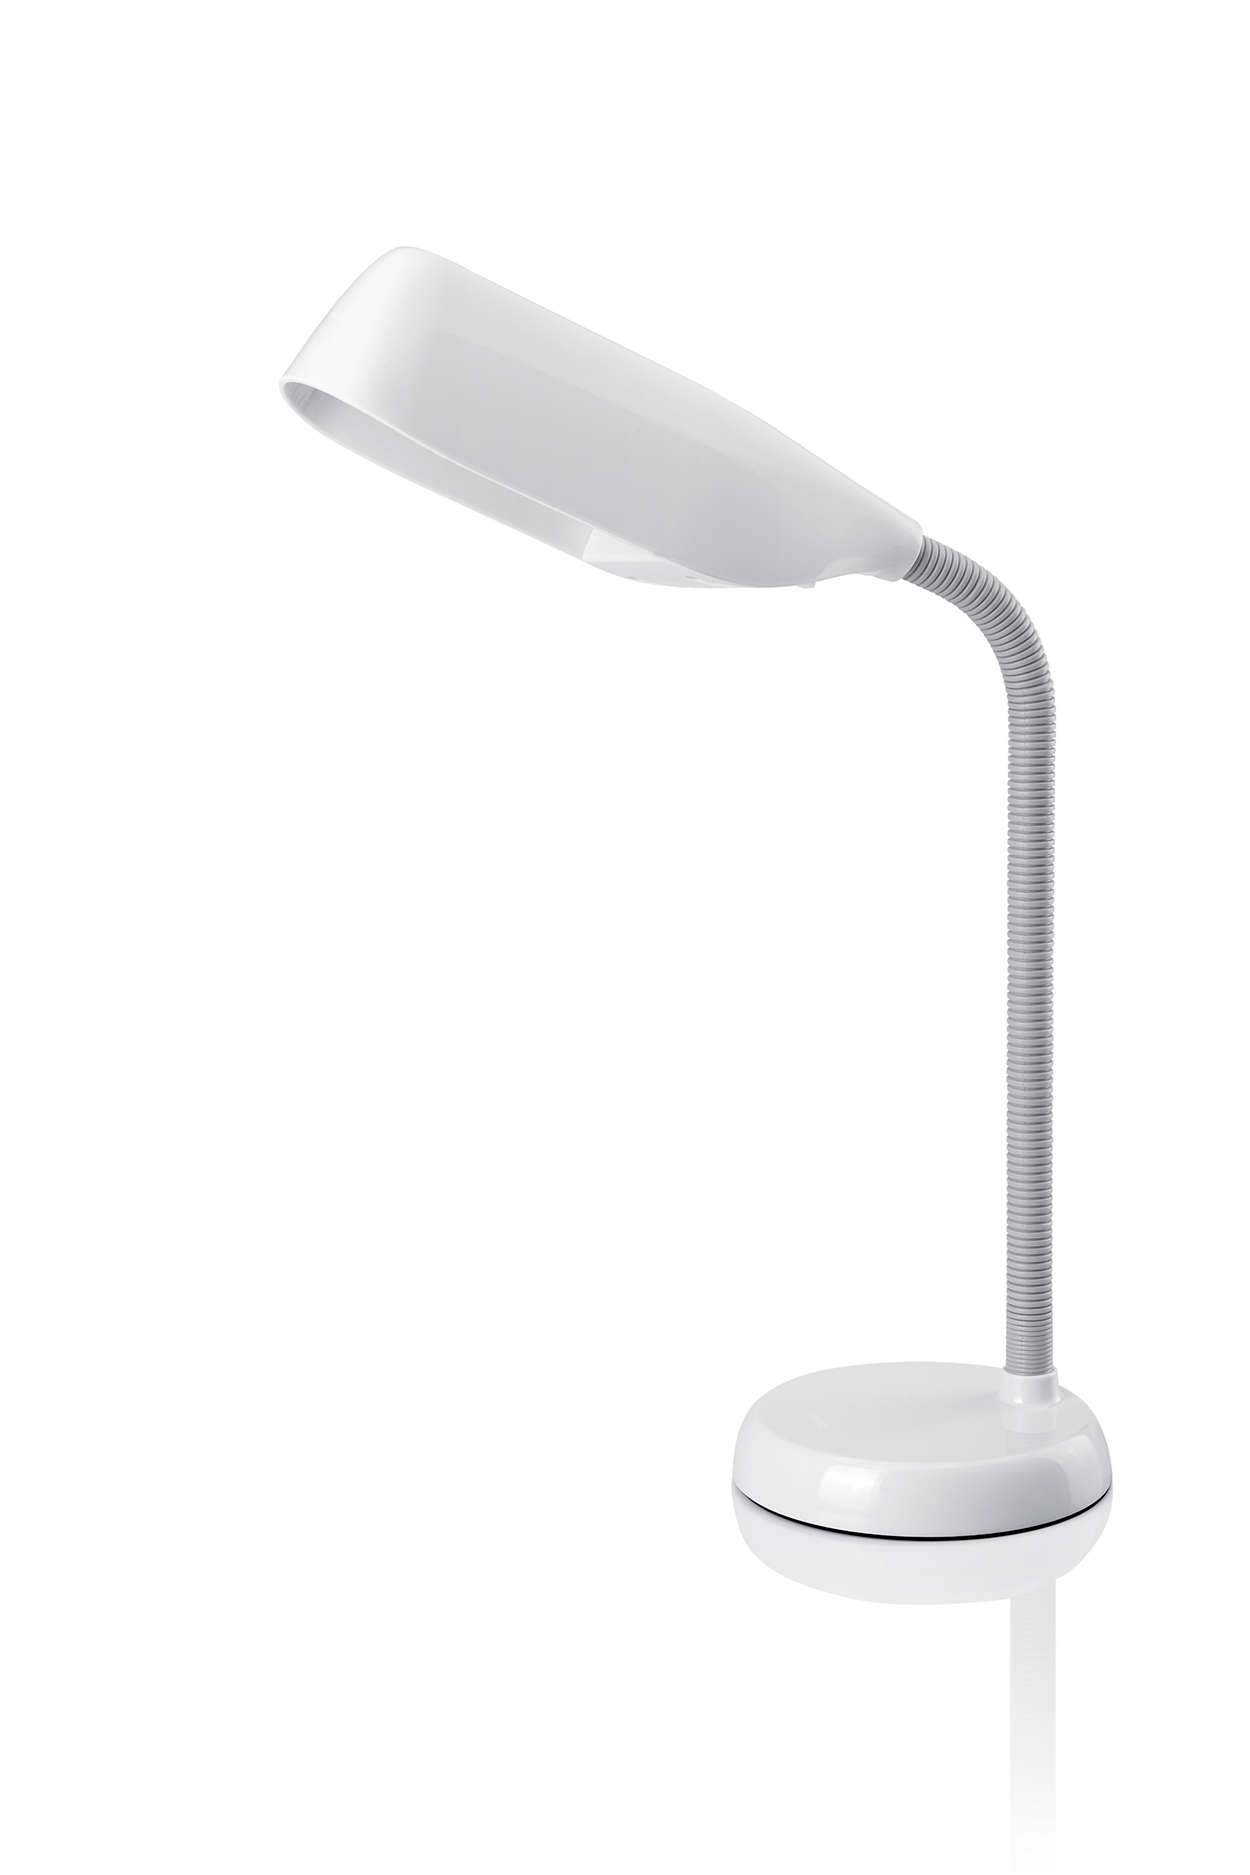 Reliable desk lighting for a brighter tomorrow